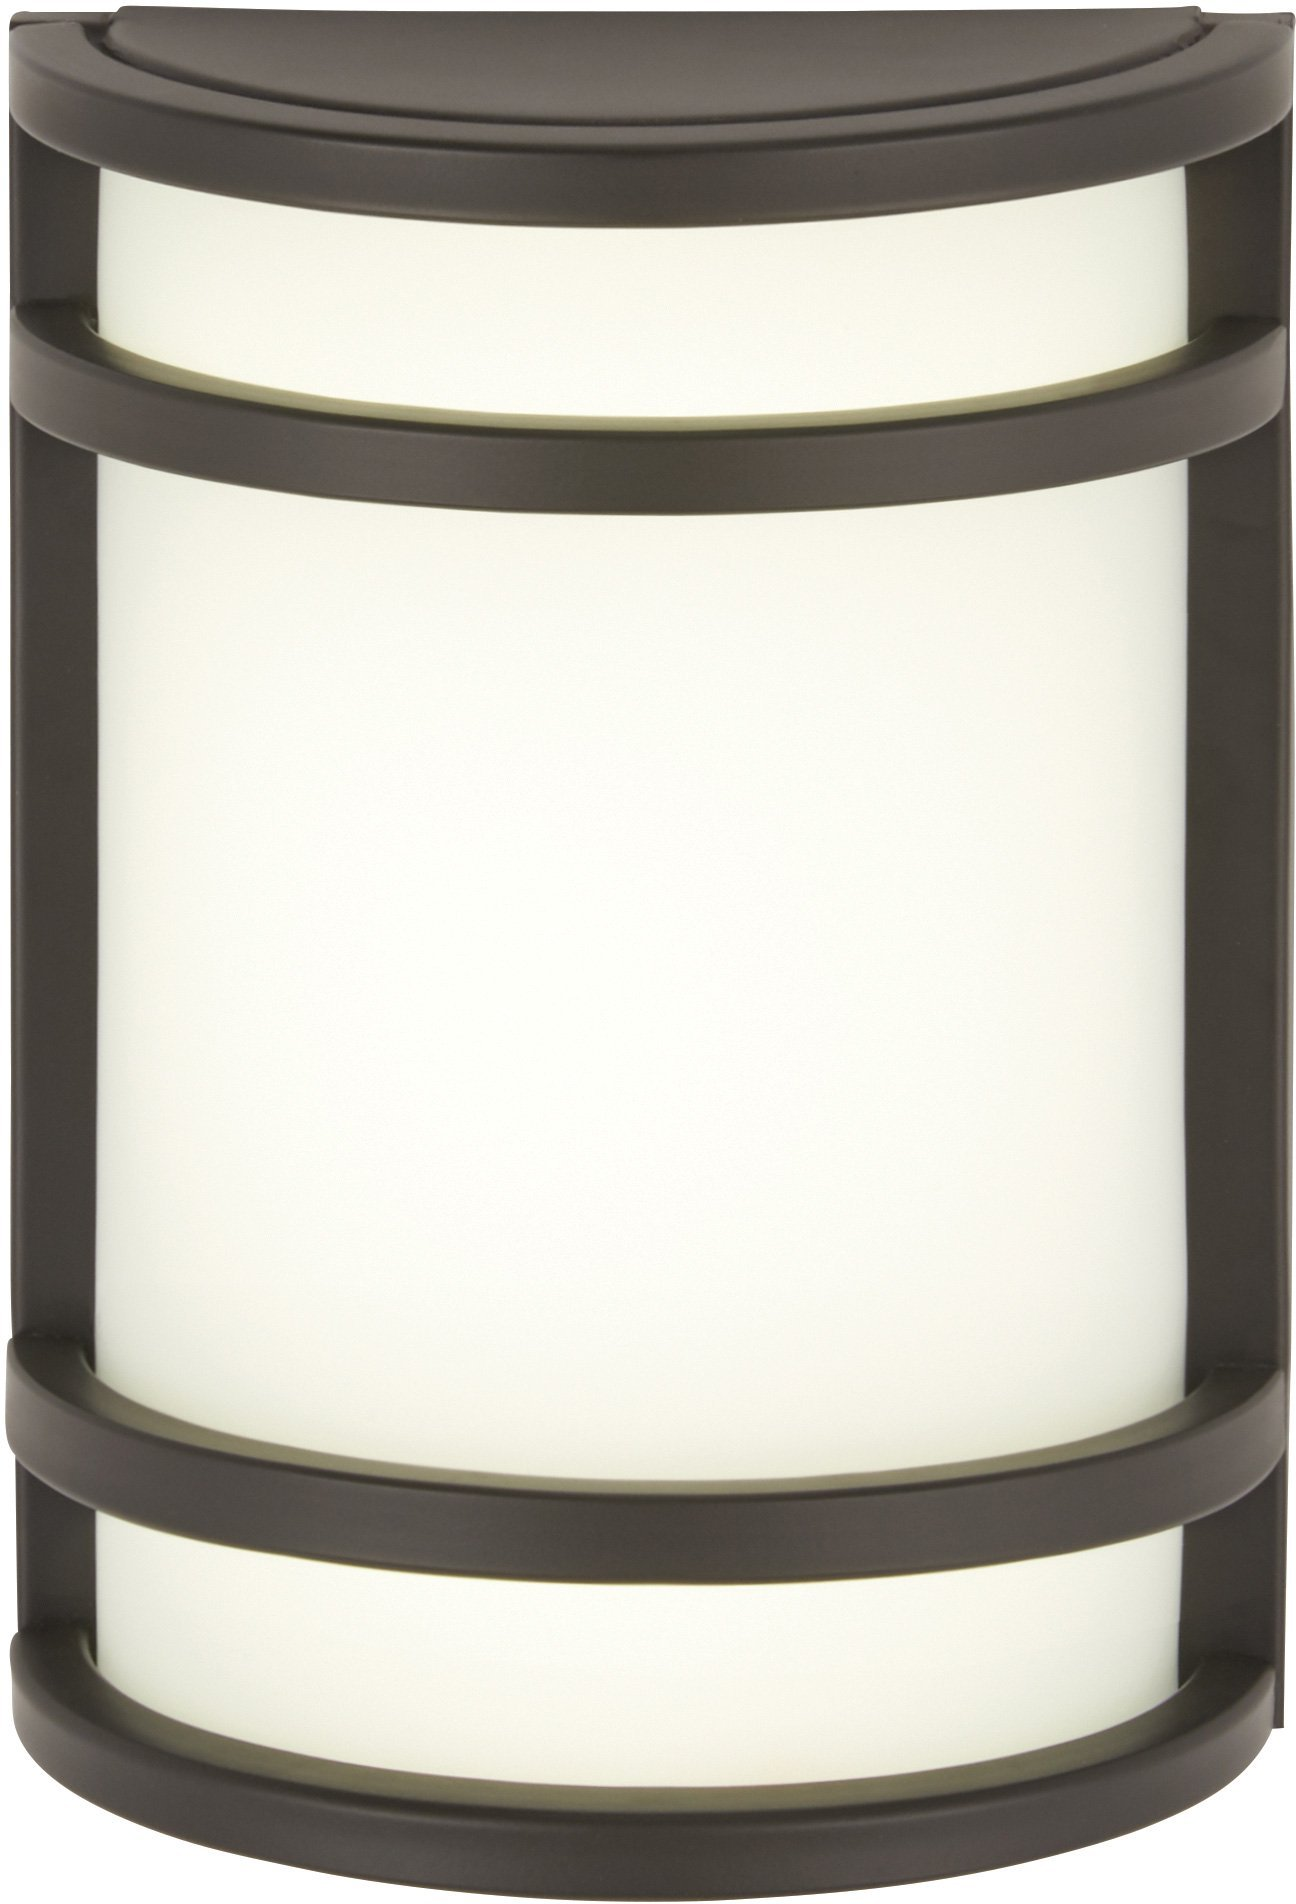 Minka Lavery Outdoor Wall Light 9801-143, Bay View Exterior Pocket Sconce Lantern, 60 Watts, Bronze